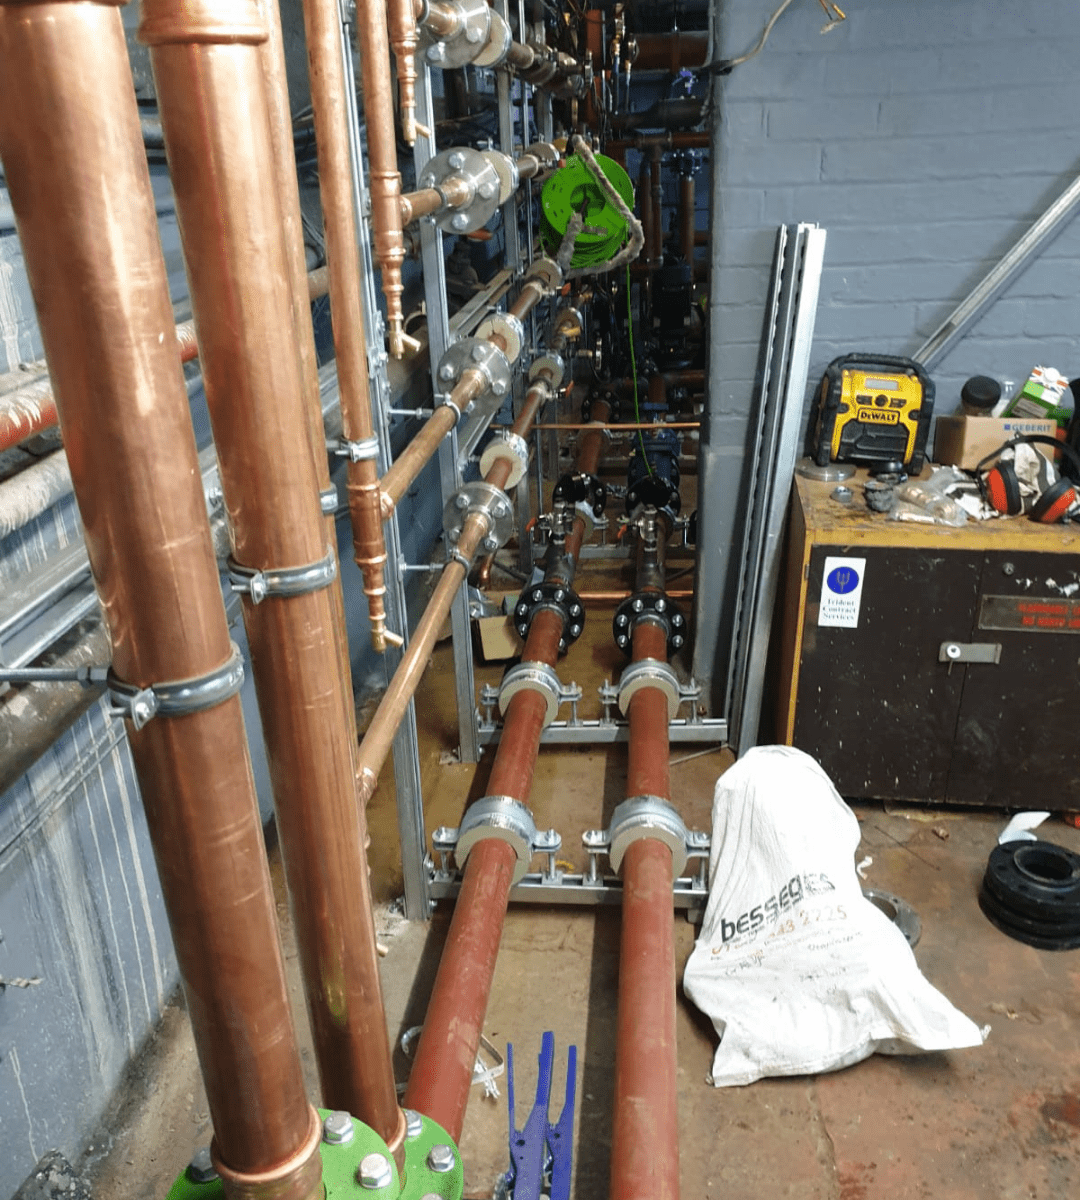 Castercliff Primary Academy School Plant Room Nelson Burnley Lancashire